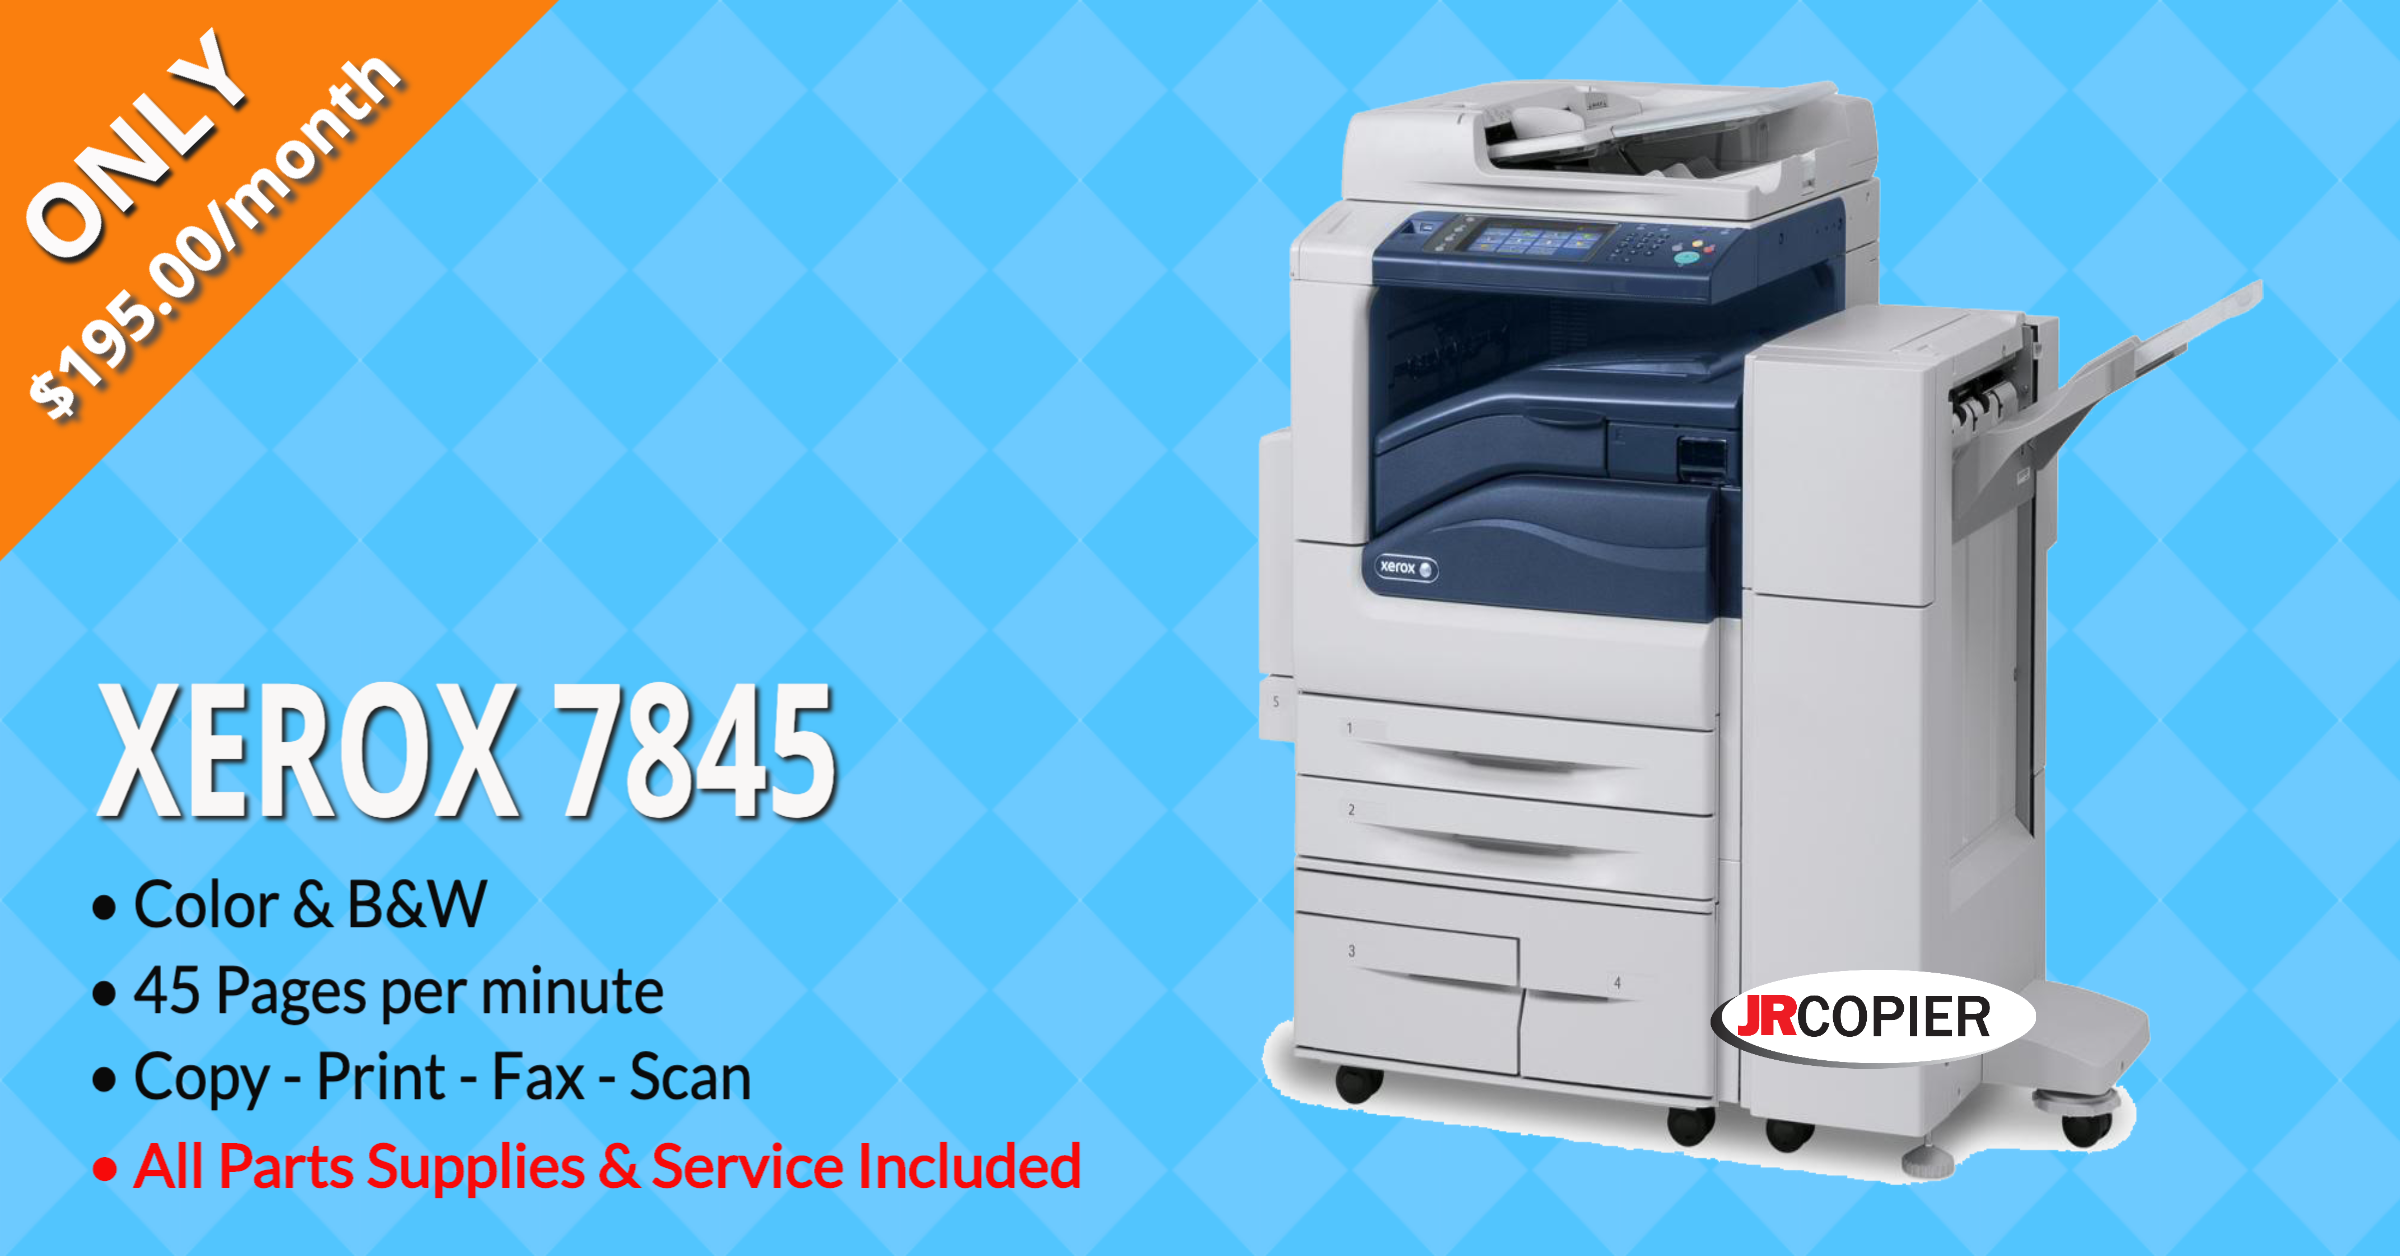 Copy Machine Companies 92211, 92255, 92260, 92261